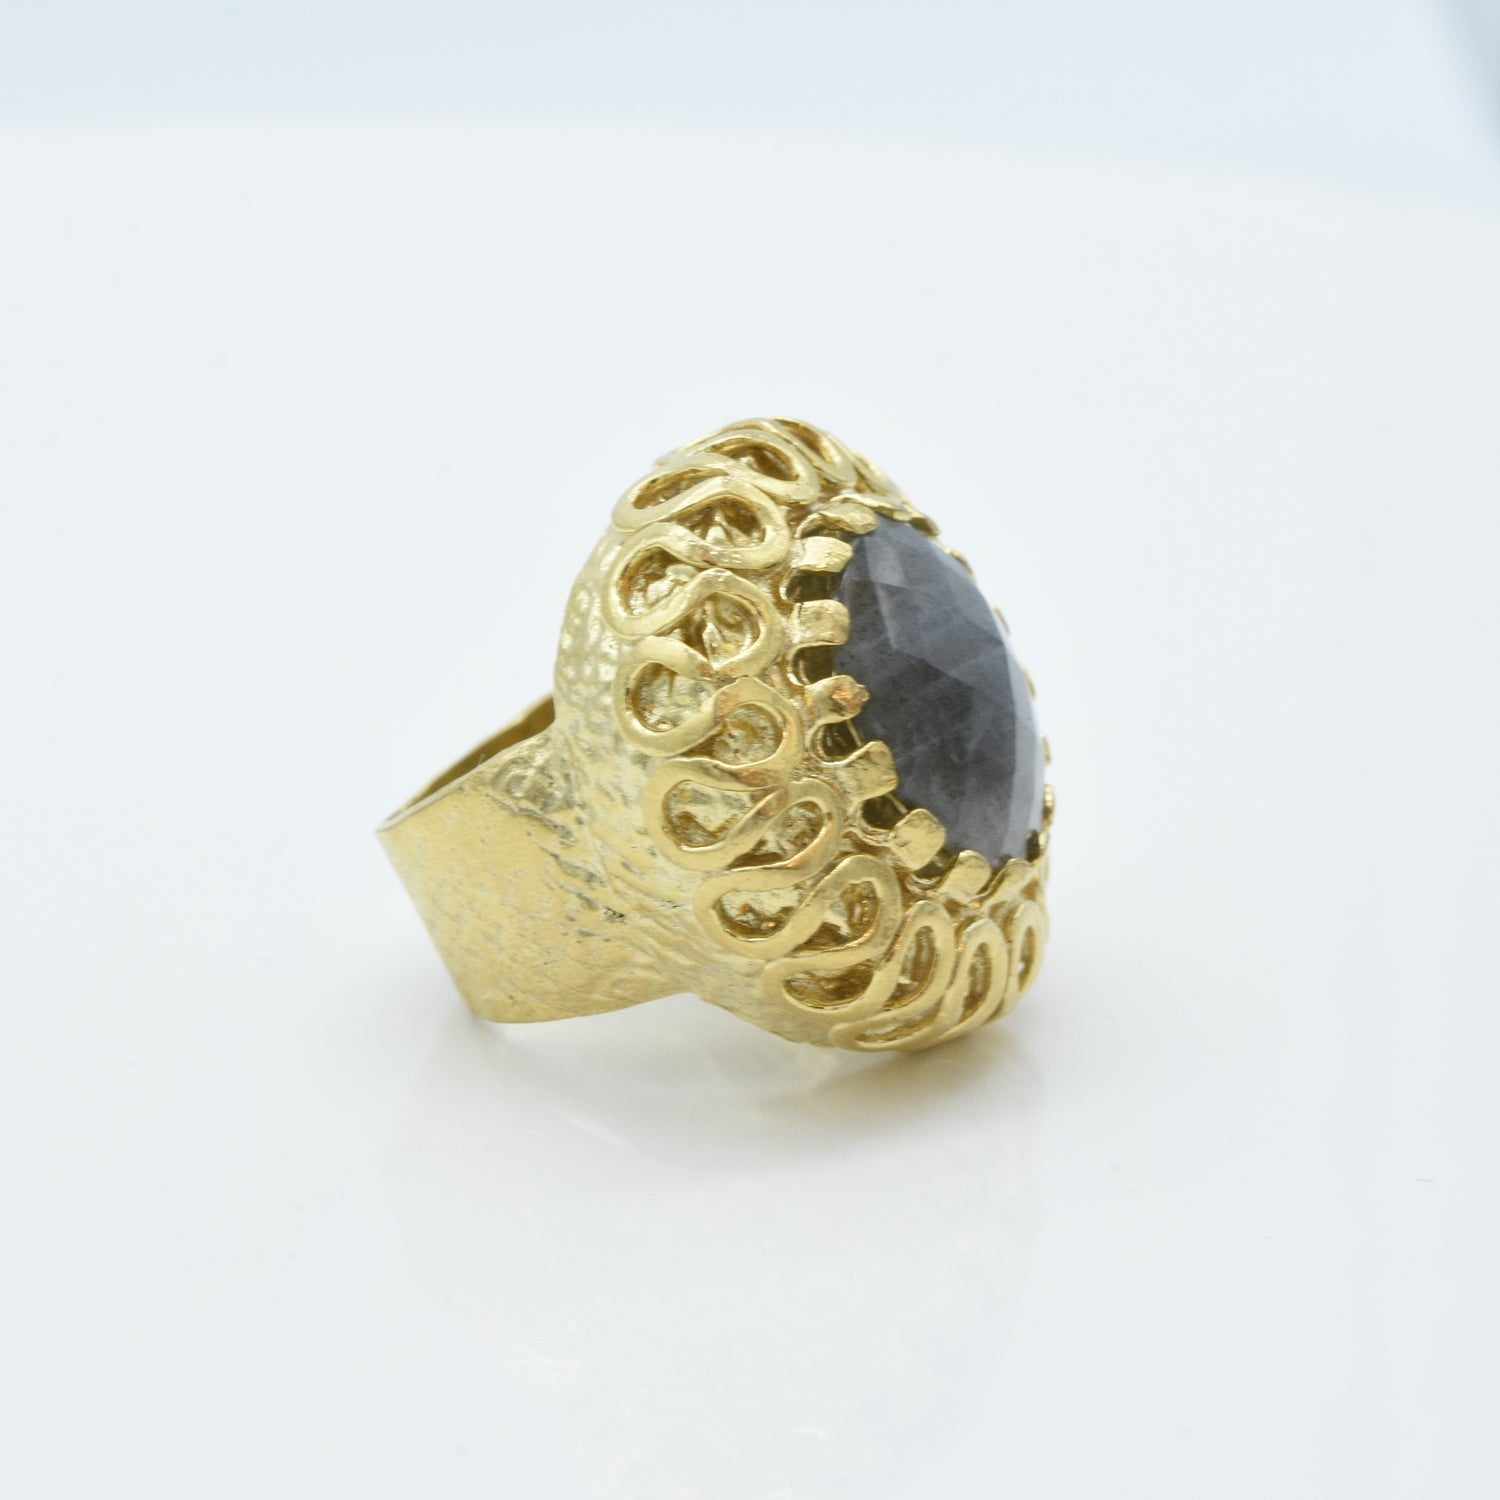 Aylas Labradorite ring - 21ct Gold plated brass - Handmade in Ottoman Style by Artisan